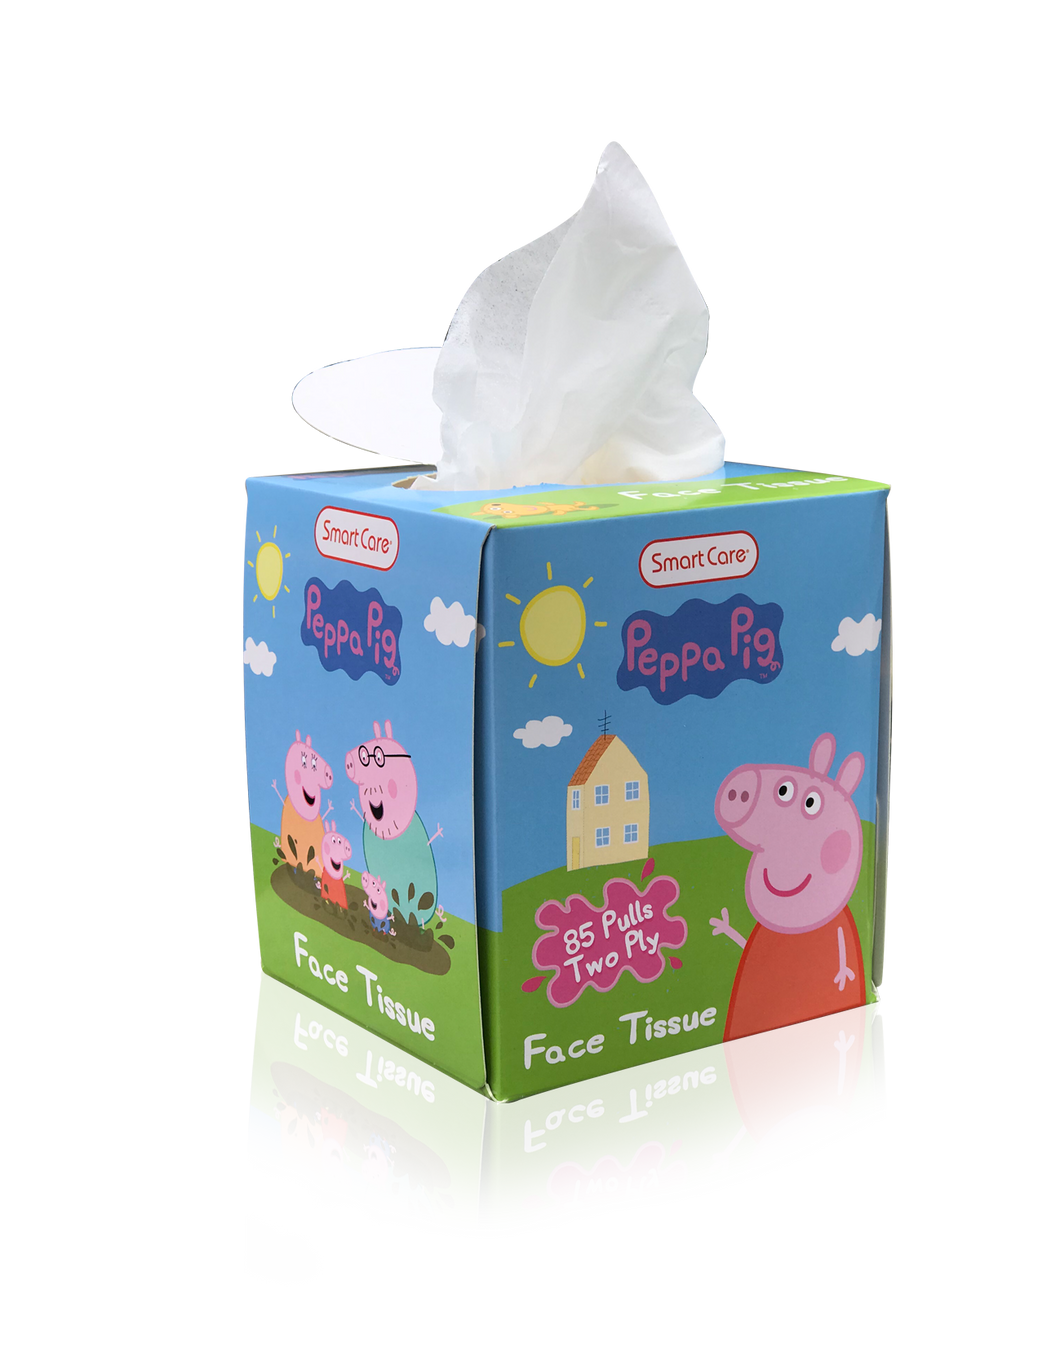 Smart Care Peppa Pig Tissue Box (85 Count)